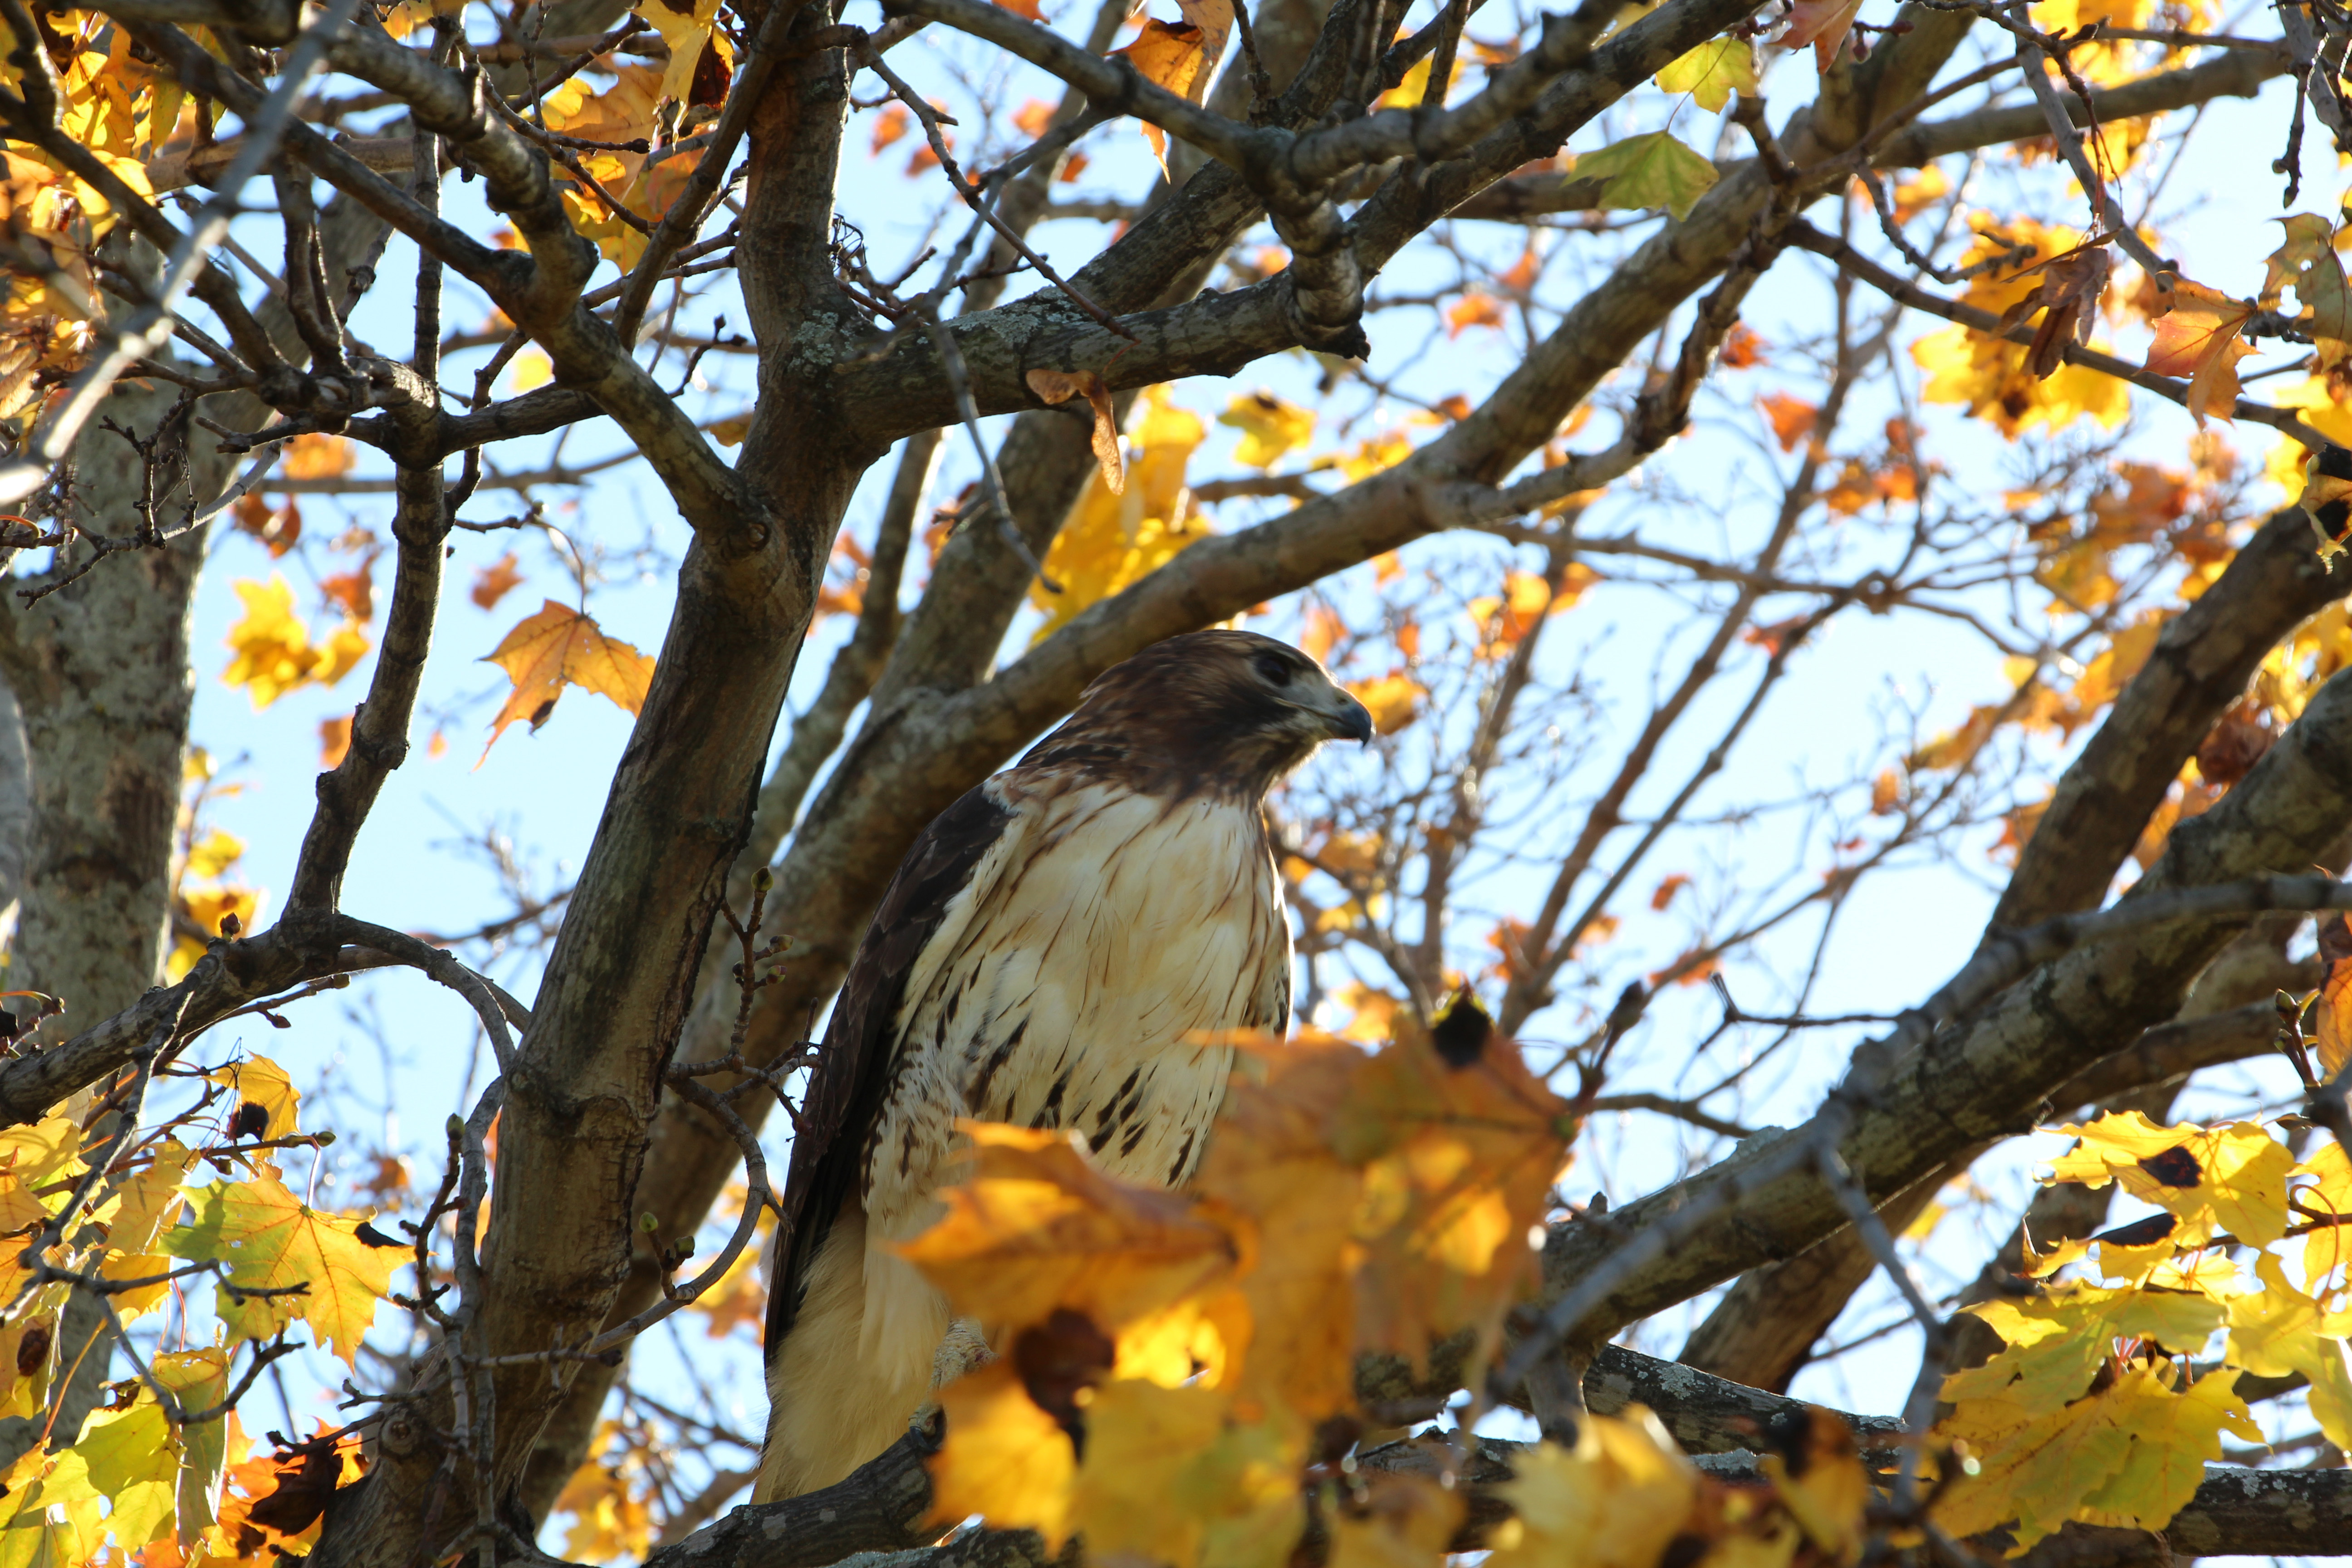 On a sunny fall day, a red-tailed hawk perches on a tree branch near the bison farm. Photo: David Pavel Juarez Lopez, University of Guanajuato